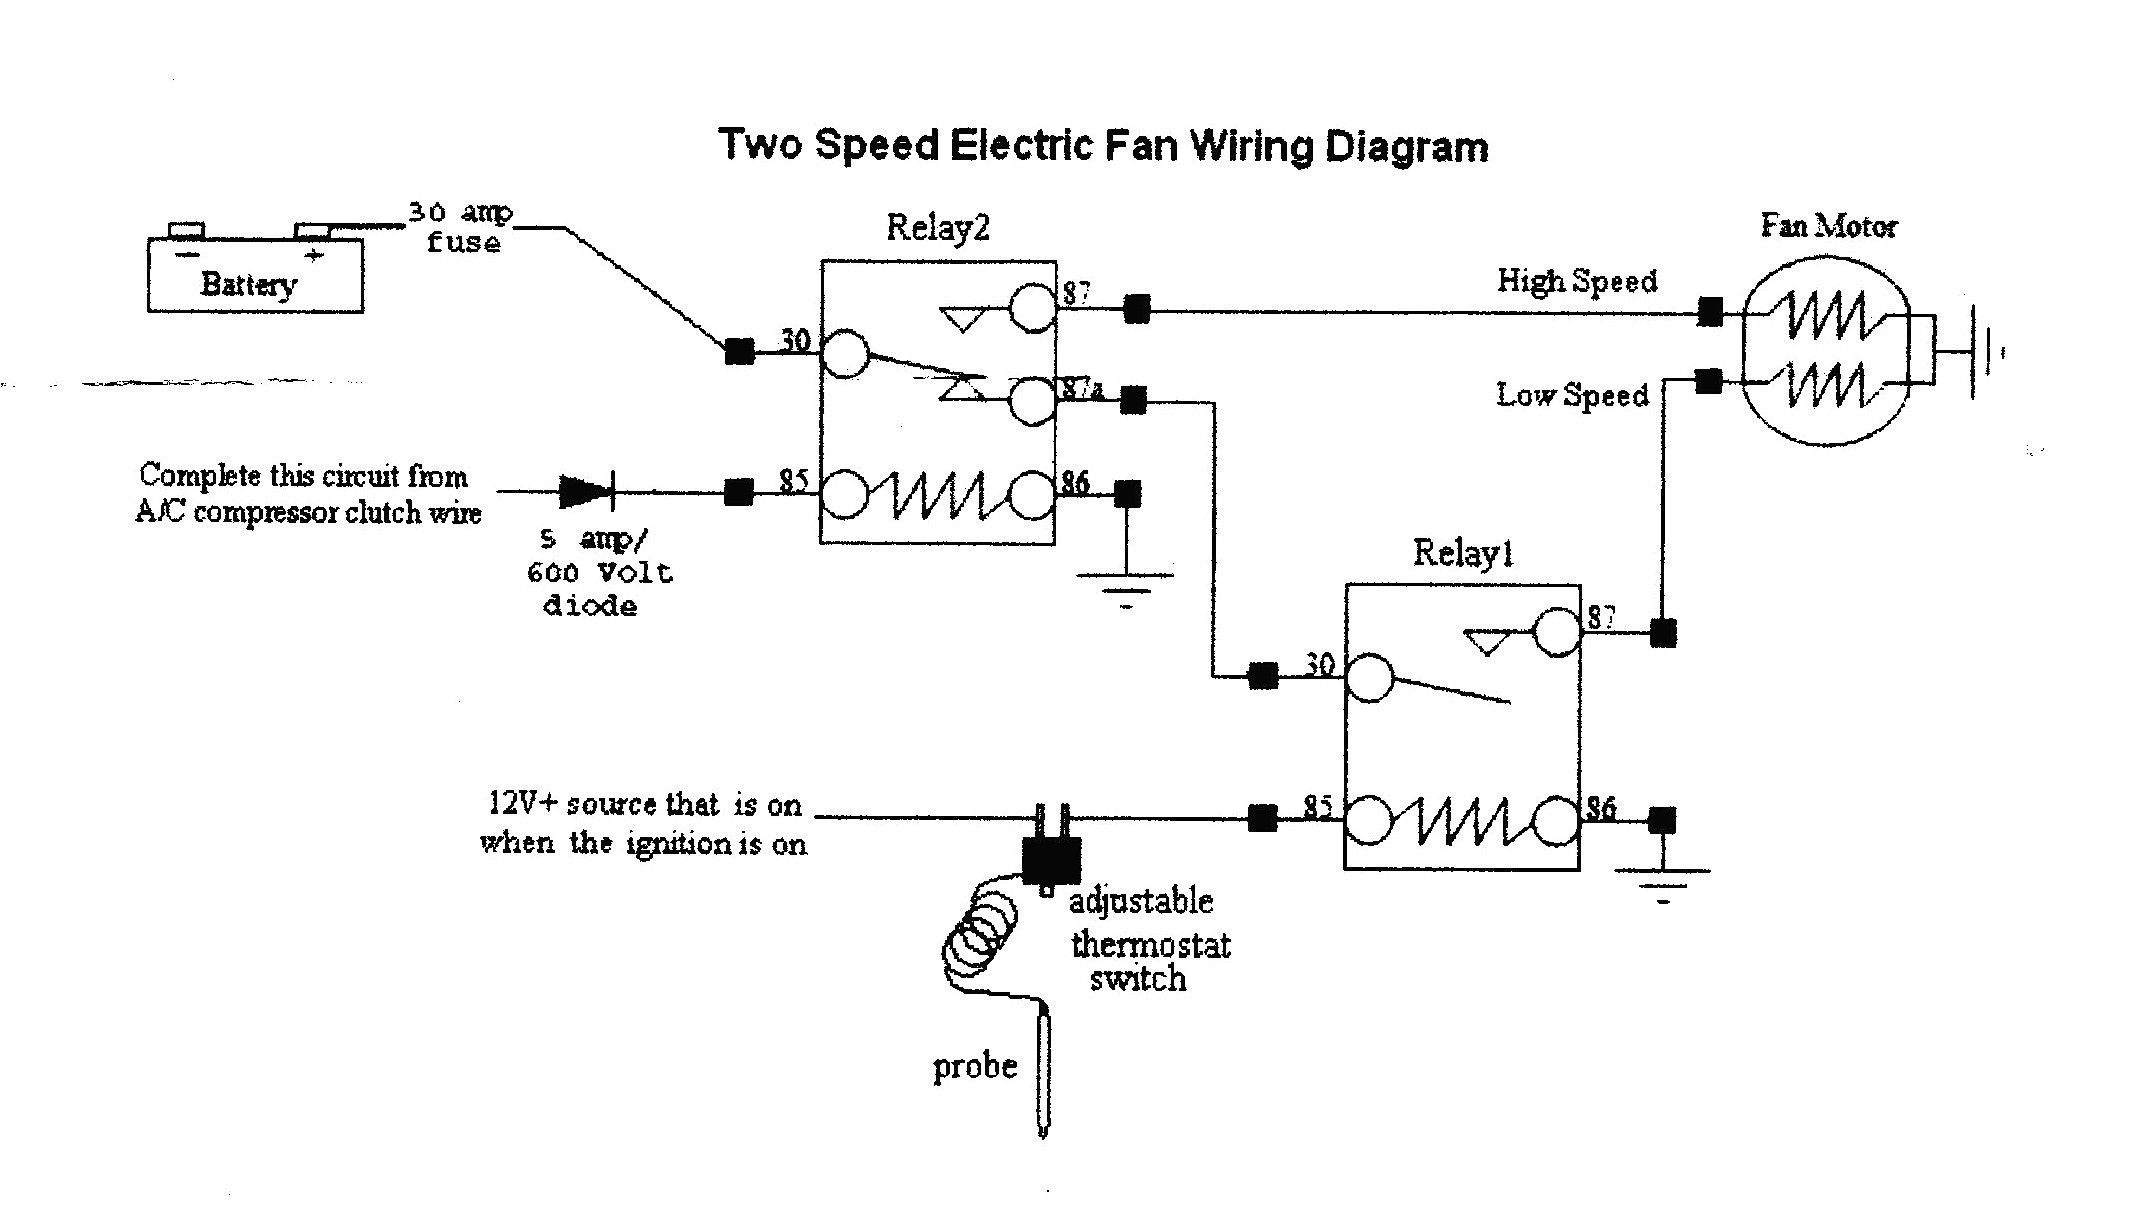 Unique Wiring Diagram For Electric Fan Relay Diagram